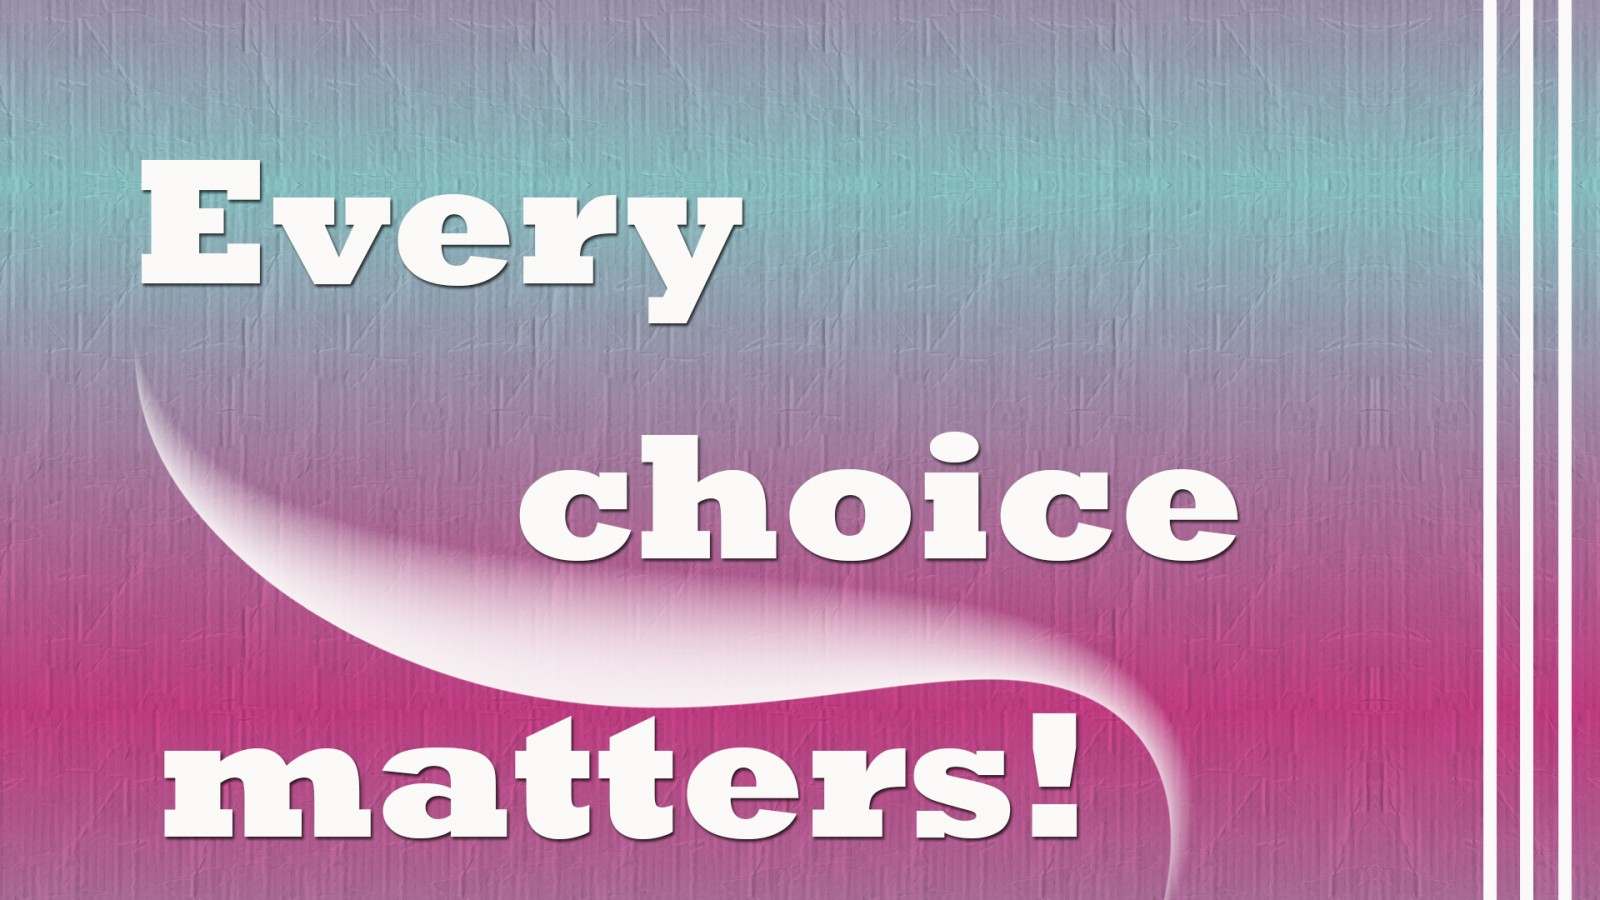 Every choice matters HD Wallpaper